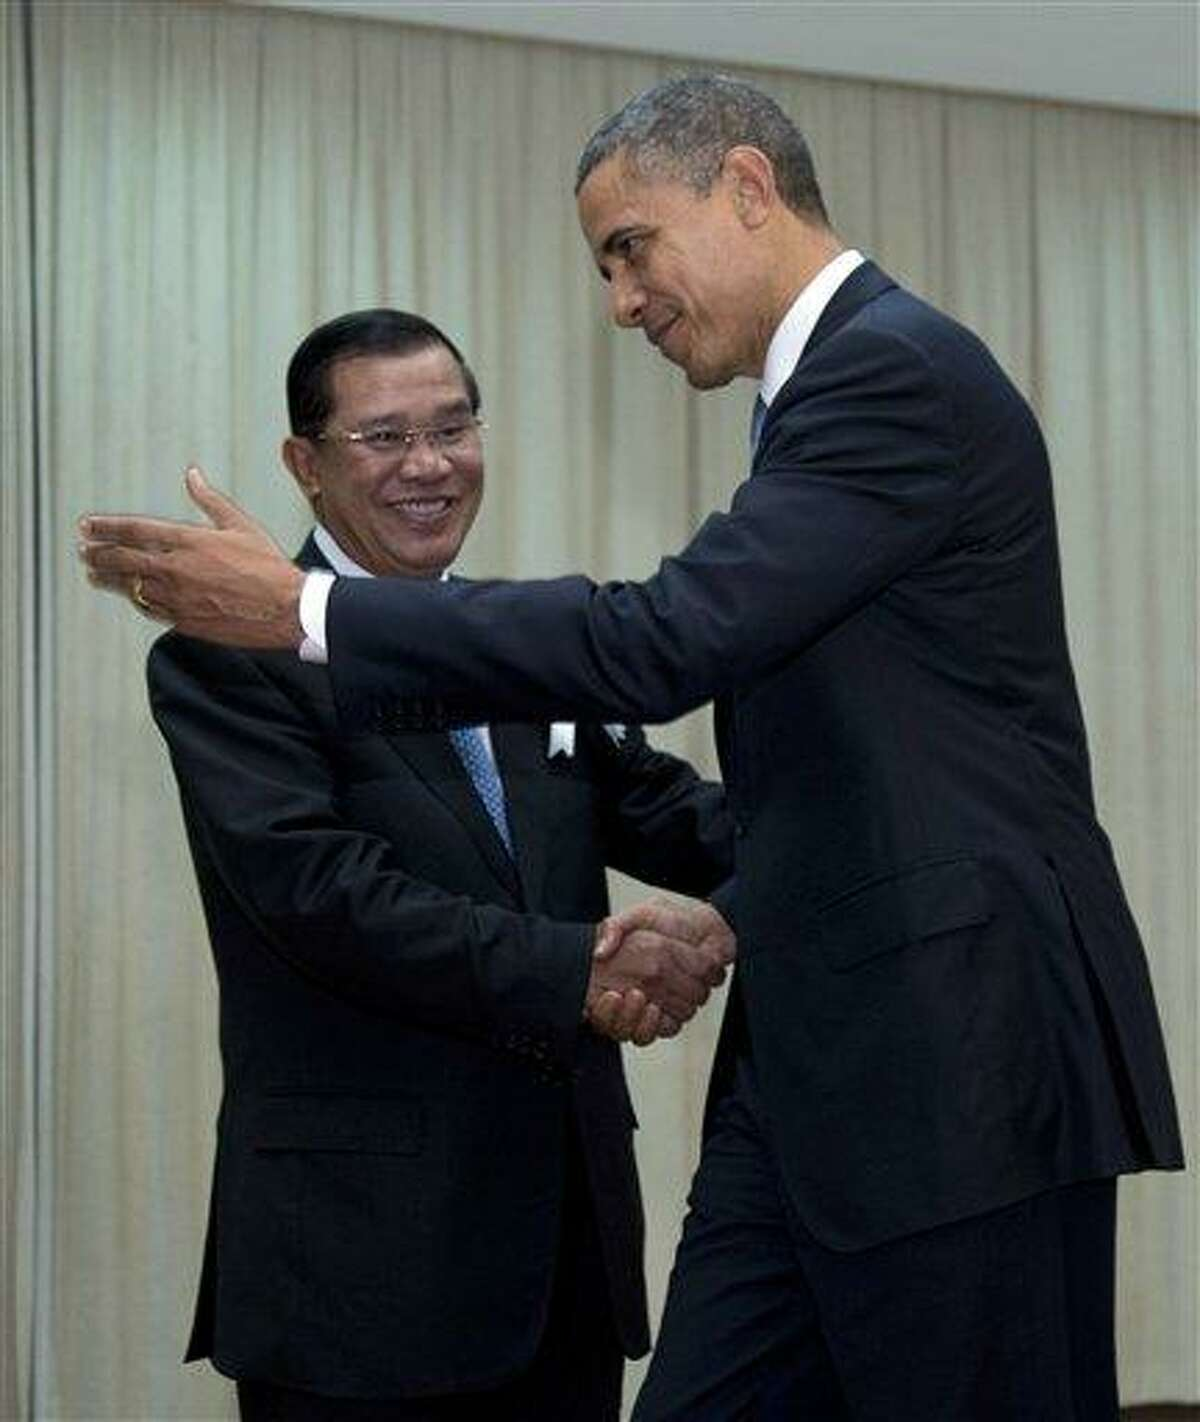 U.S. President Barack Obama is welcomed by Cambodia's Prime Minister Hun Sen as he arrives at the Peace Palace in Phnom Penh, Cambodia Monday. Obama will attend the East Asia Summit. AP Photo/Carolyn Kaster